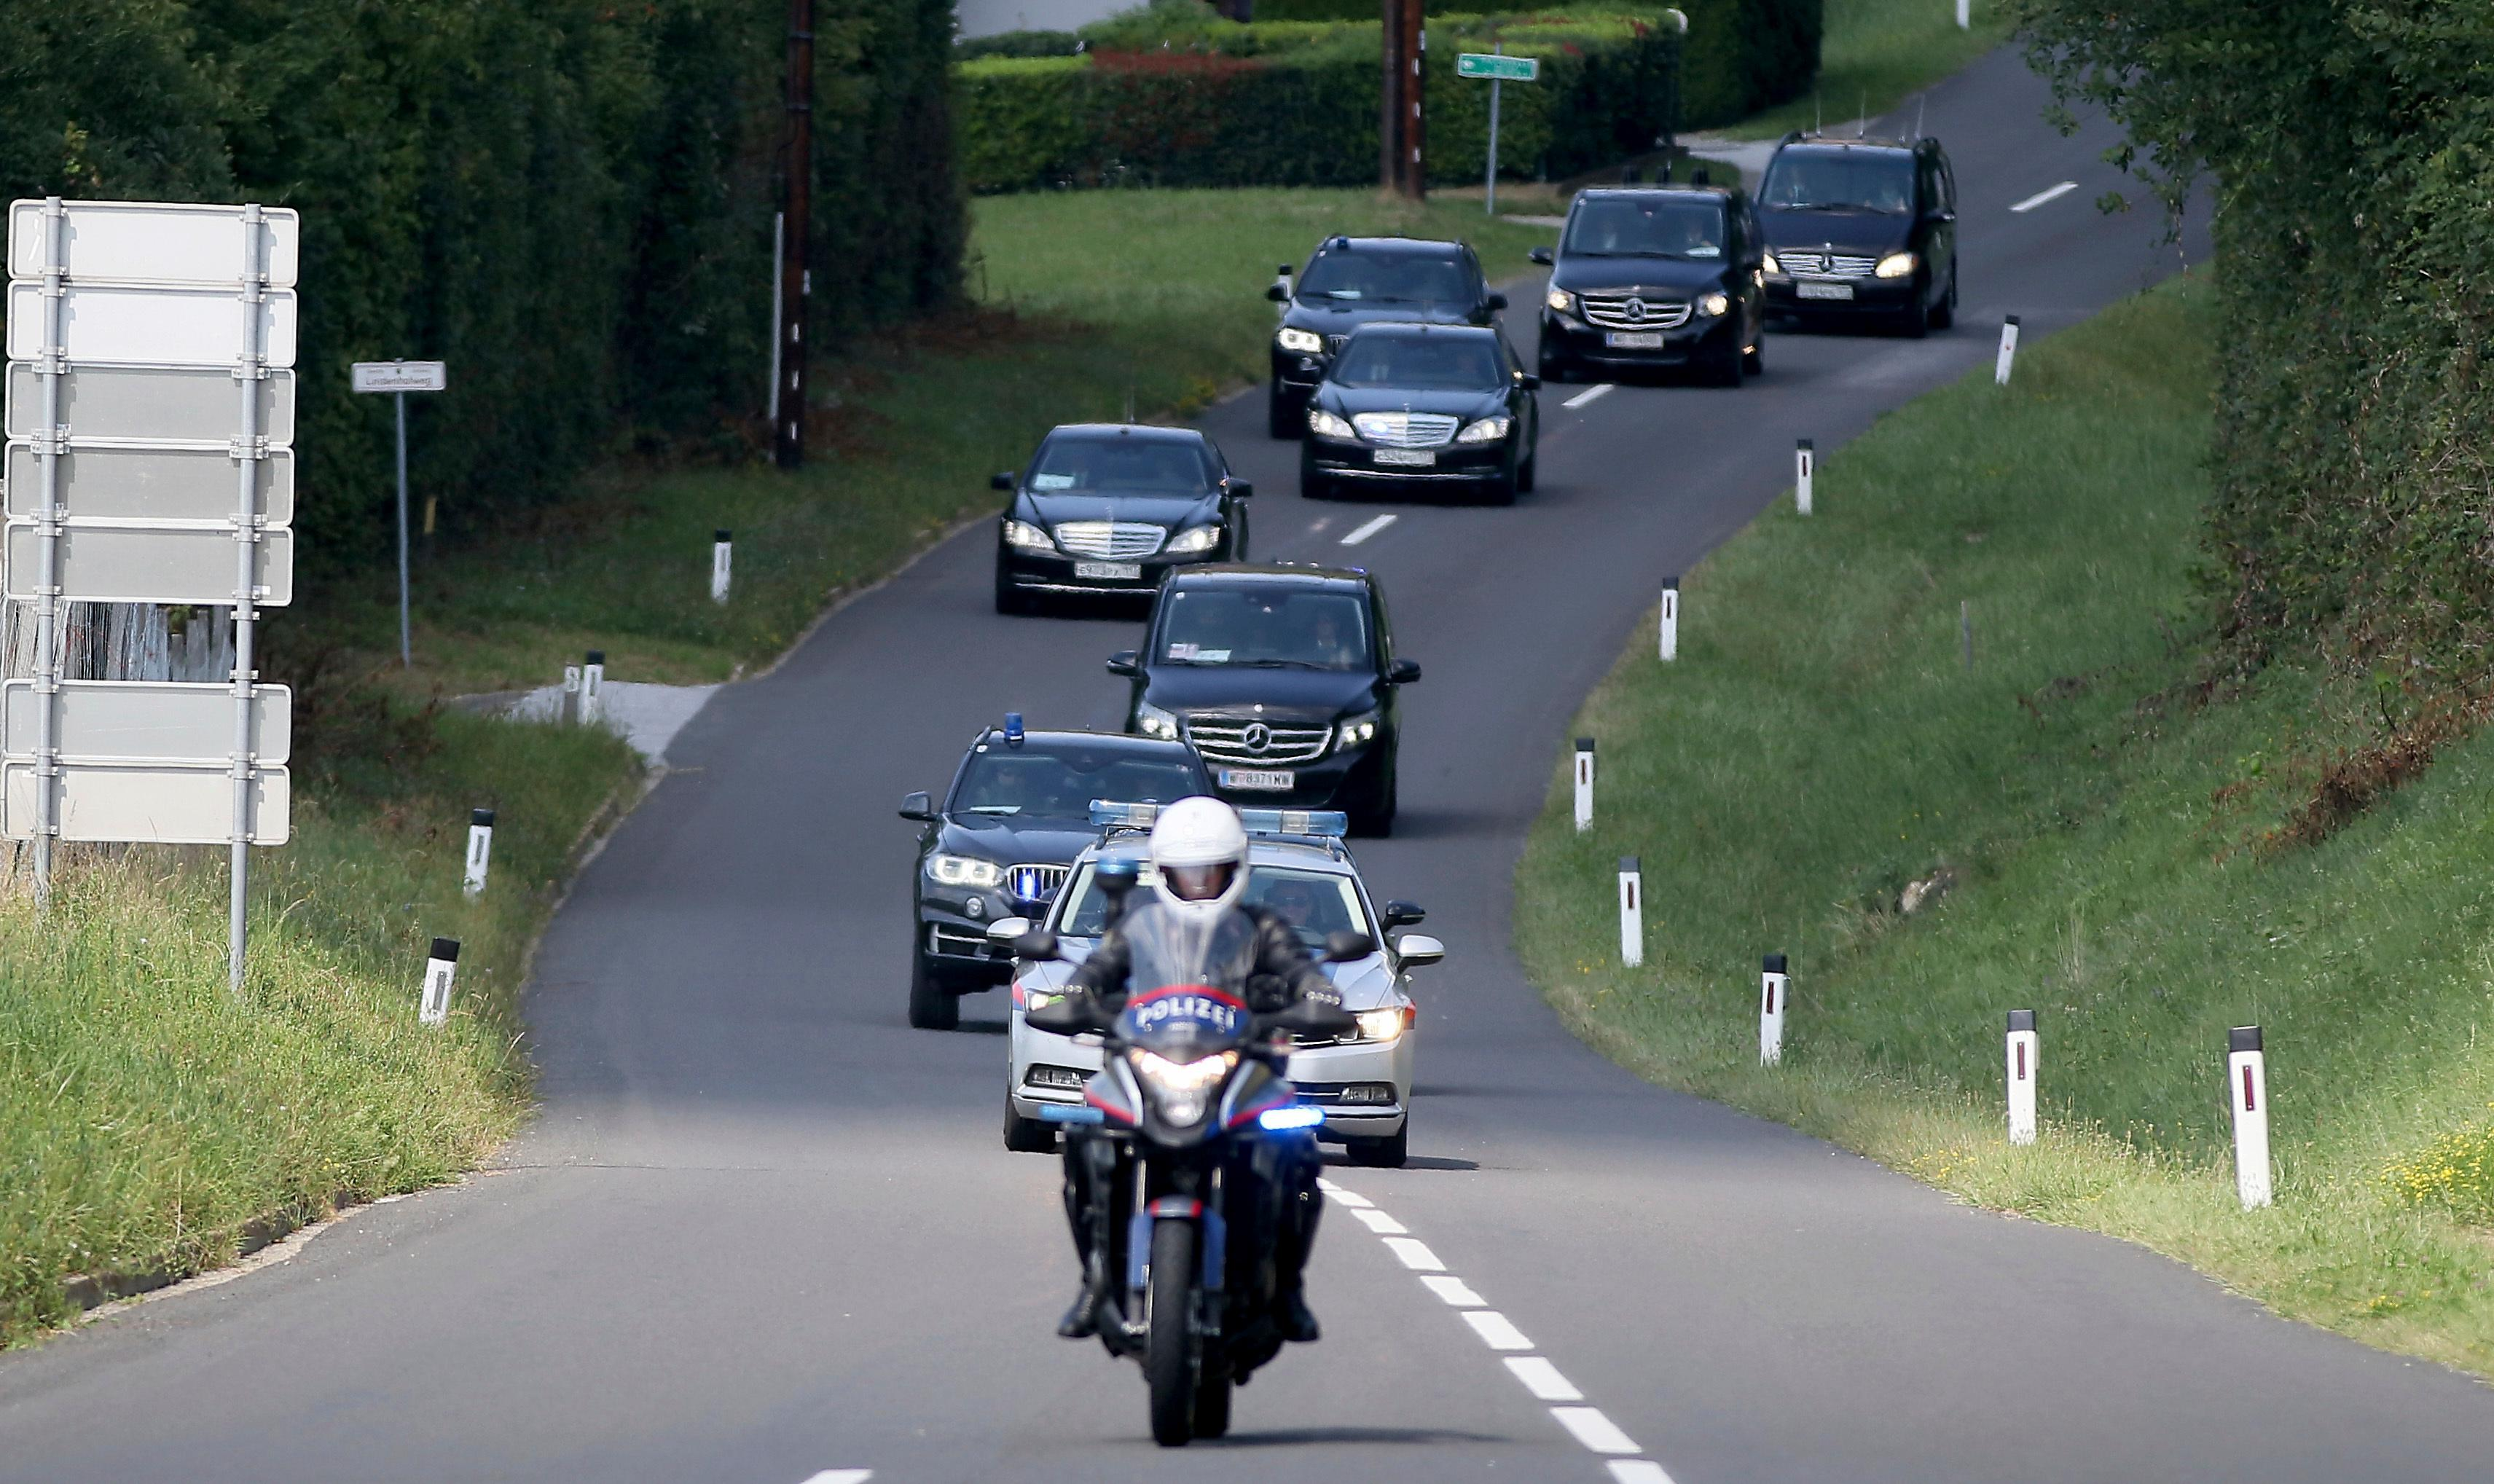 The car convoy of Russia's President Vladimir Putin arrives for the wedding of Austria's Foreign Minister Karin Kneissl and Wolfgang Meilinger Aug. 18. (AP Photo/Ronald Zak)